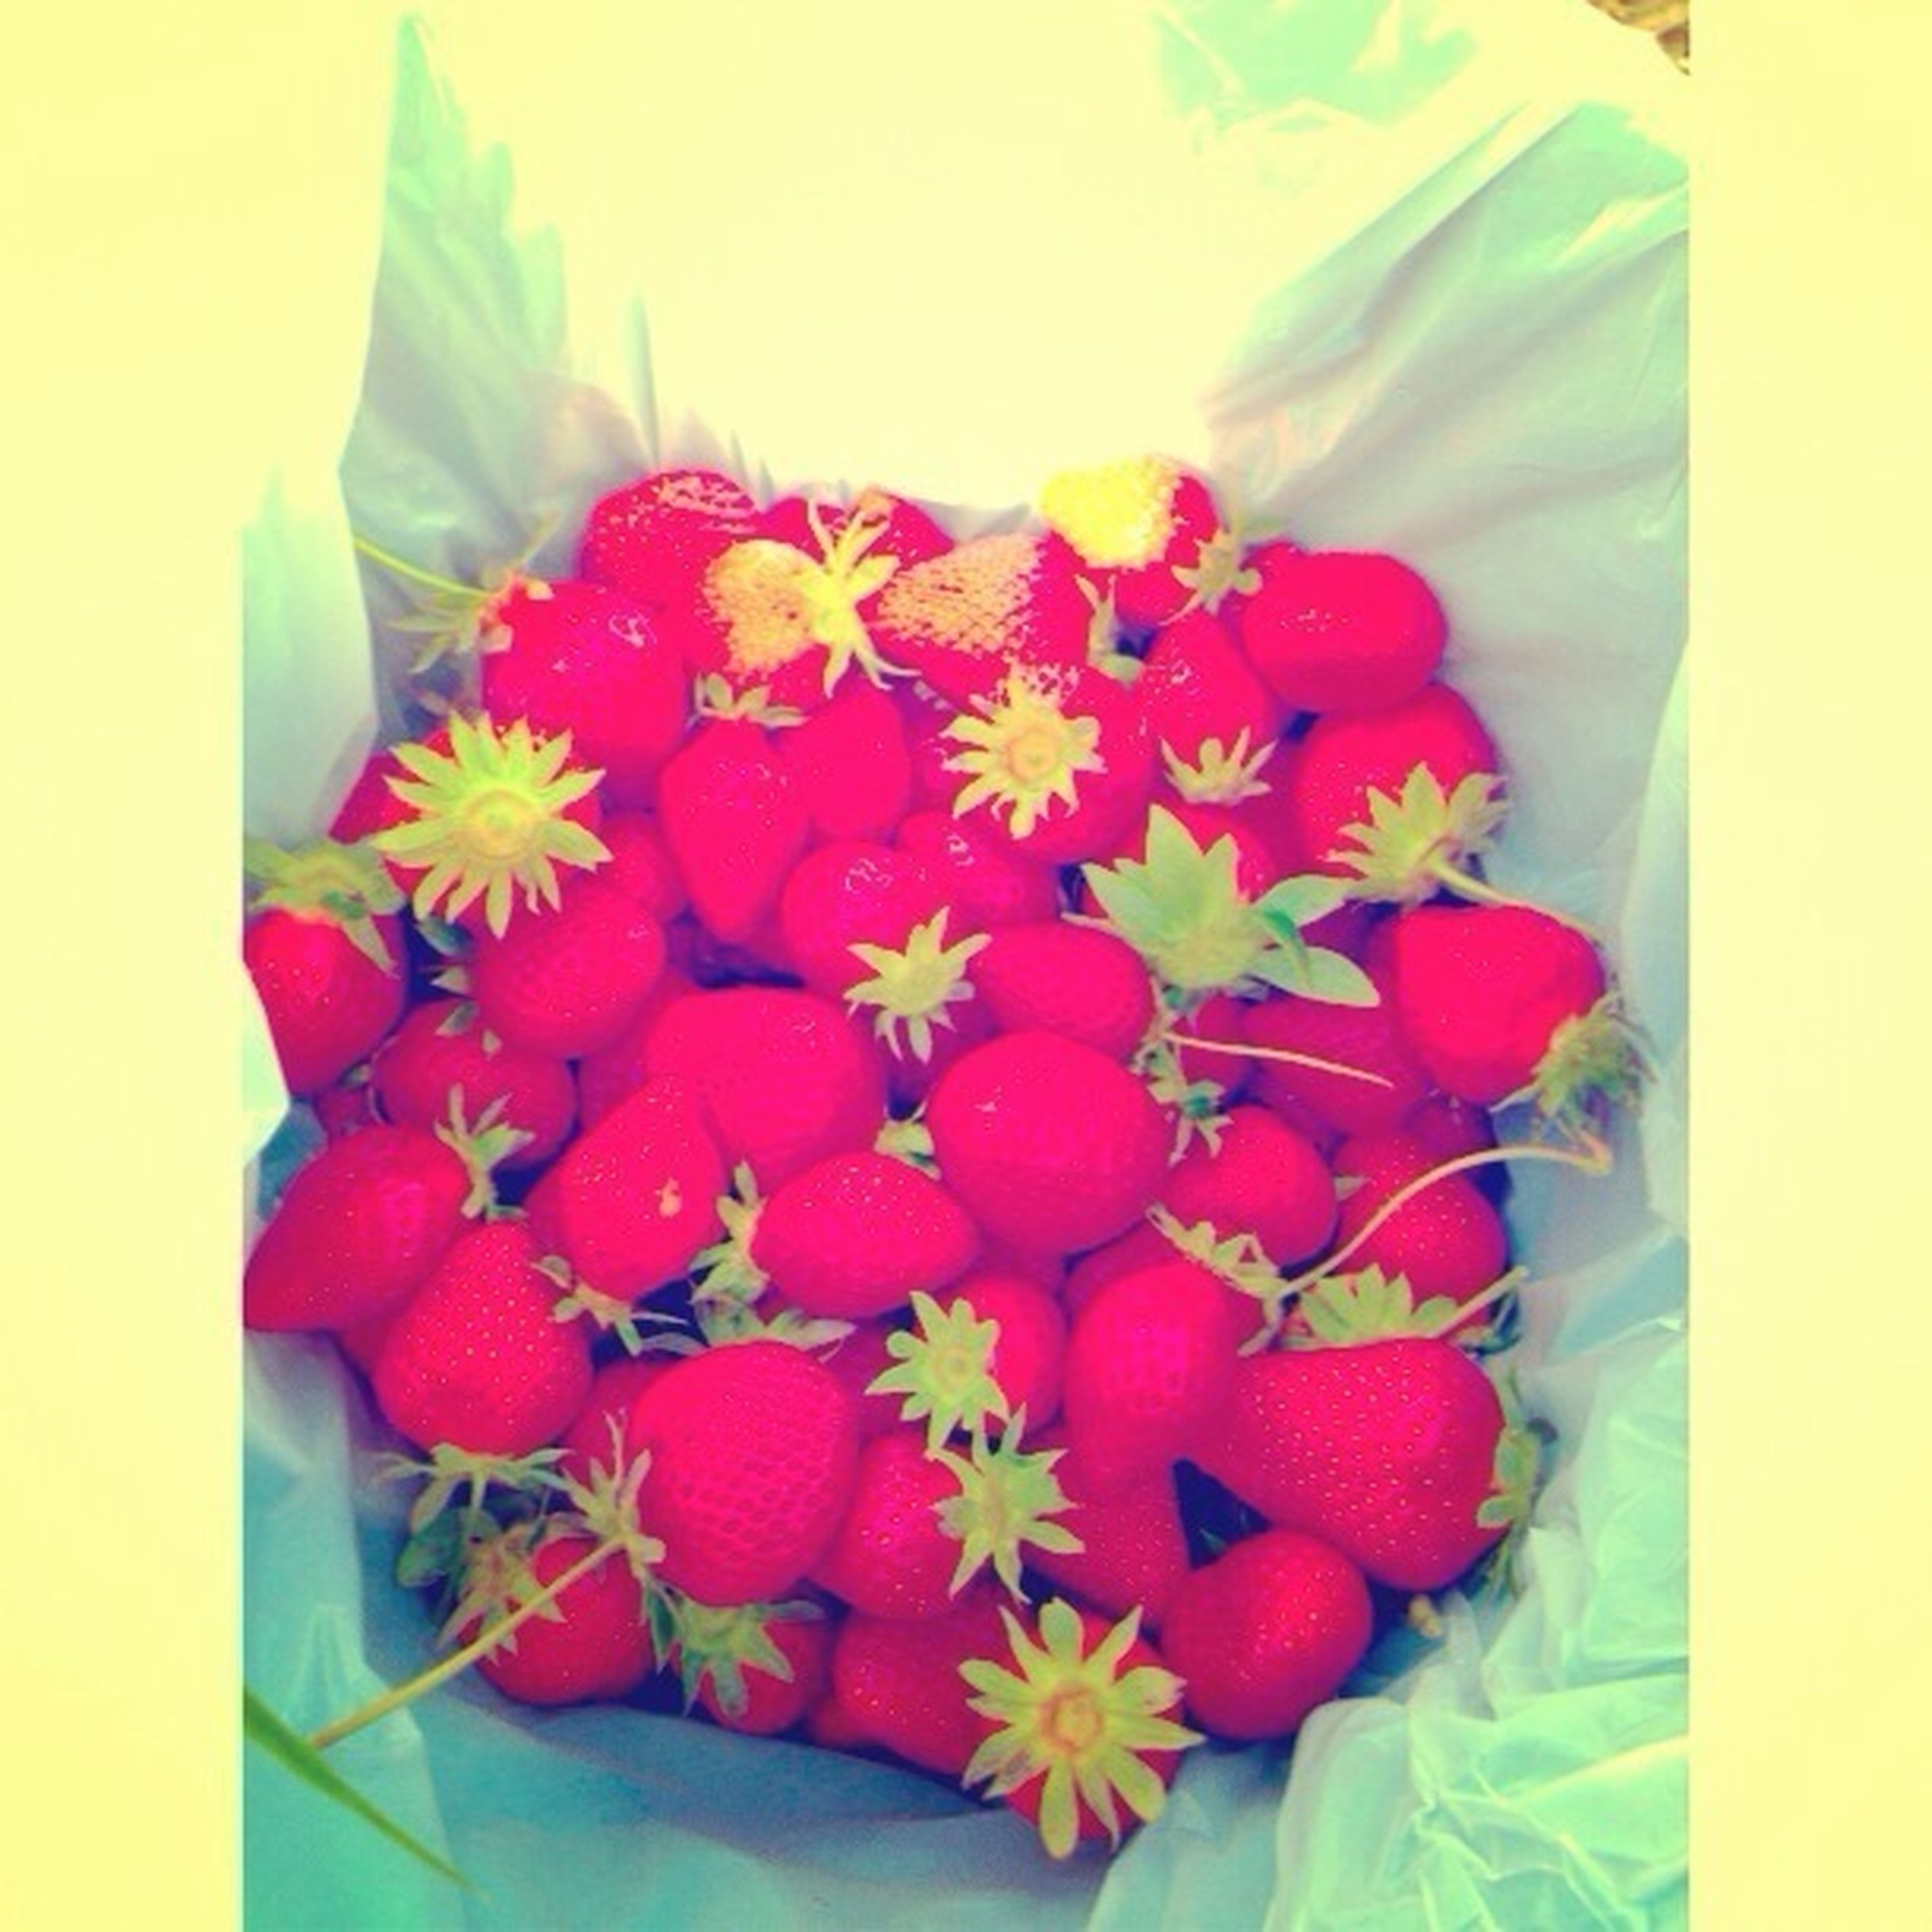 Strawberry.Loots